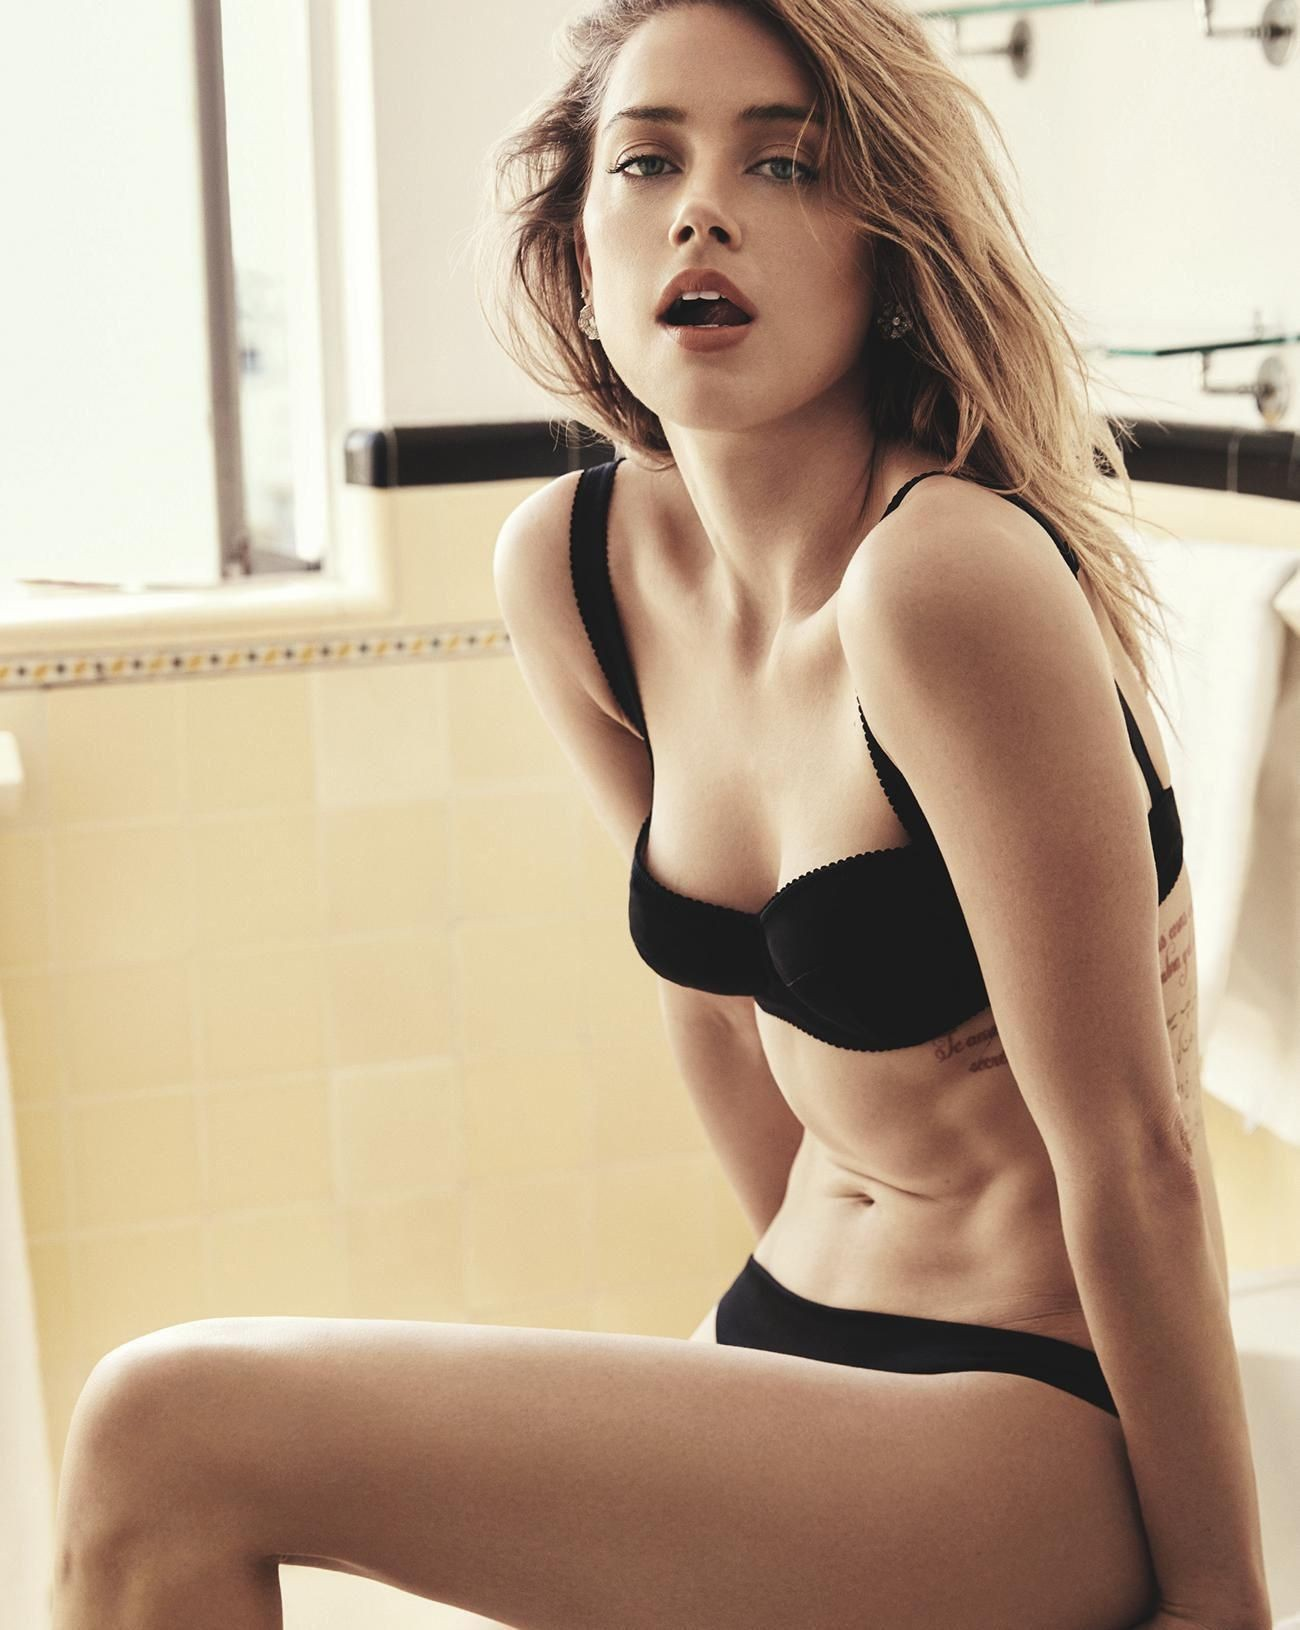 Amber Heard Topless amber heard nude, naked - pics and videos - imperiodefamosas